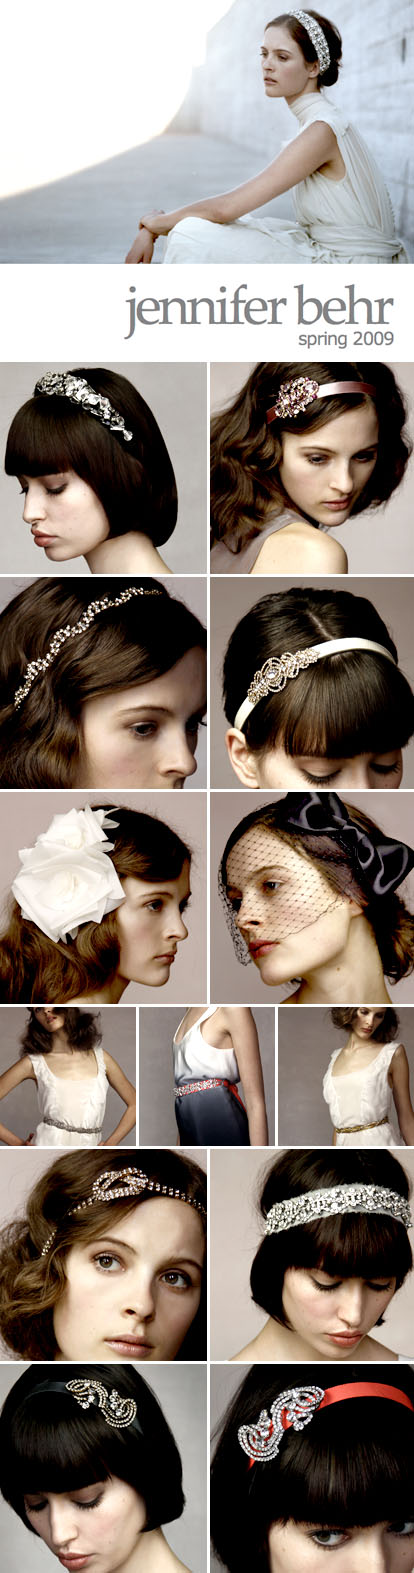 Jennifer Behr bridal hair accessories, spring 09 collection, veils, headbands, jewels, feathers and ribbons